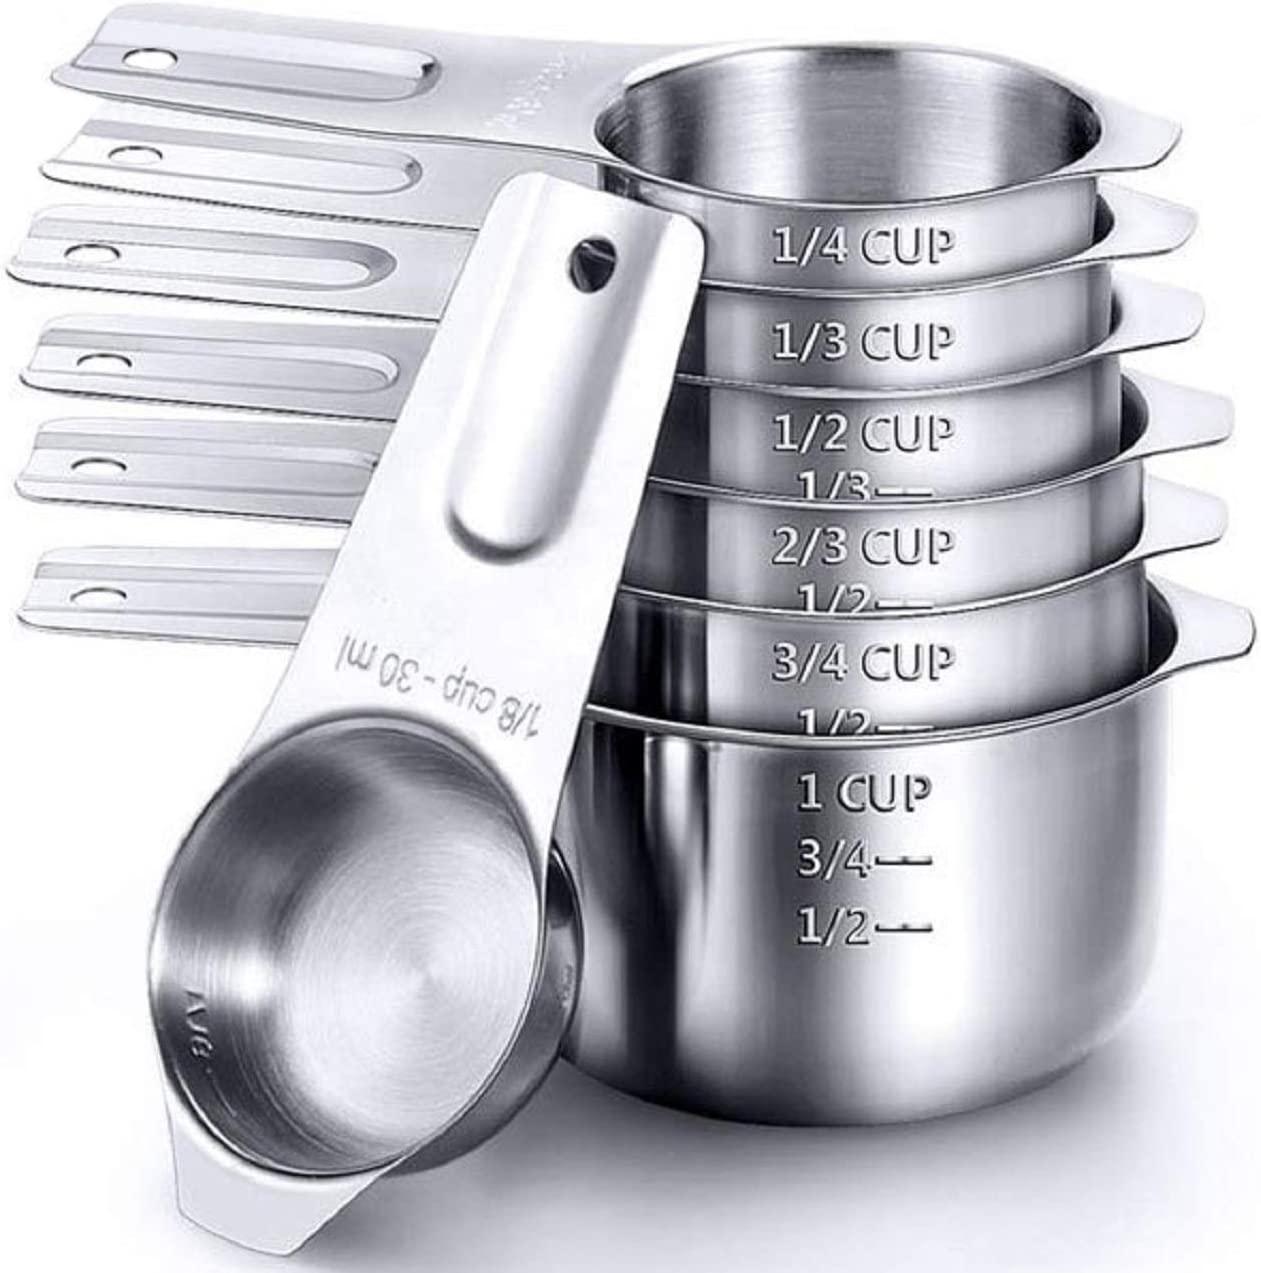 Measuring Cups,Stainless Steel Measuring Cup Food Grade Measuring Cup for Kitchen Cooking and Baking (Set of 7)